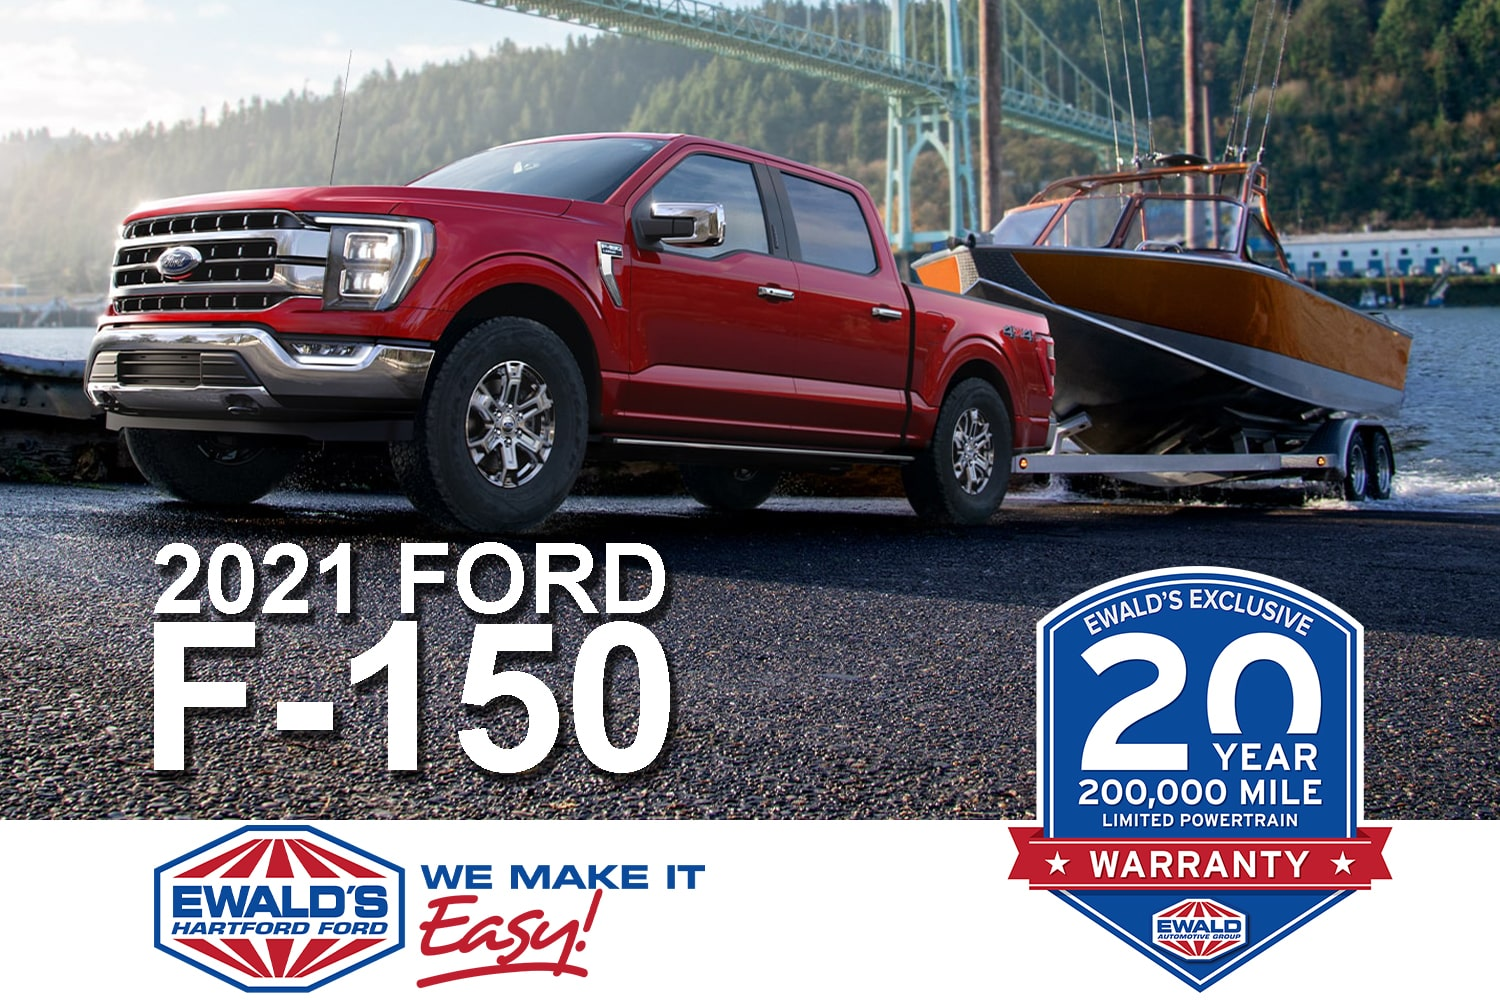 2021 Ford F-150 at Ewald's Venus Ford